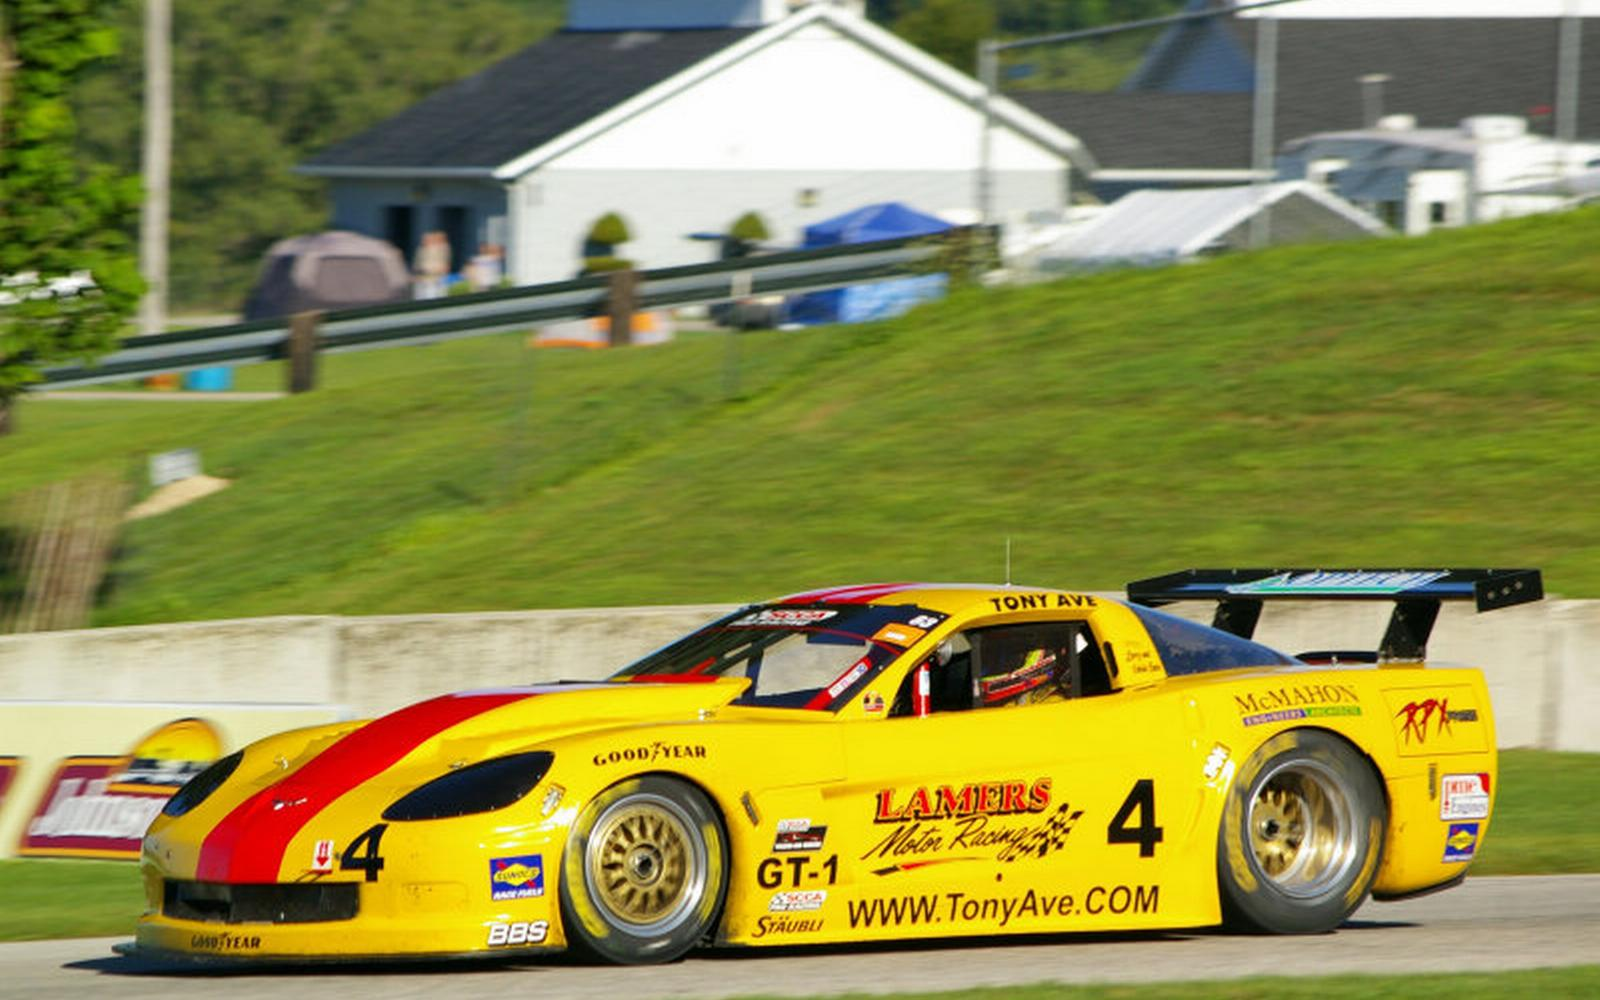 On this Day in Trans Am History: Sept. 4, 2011